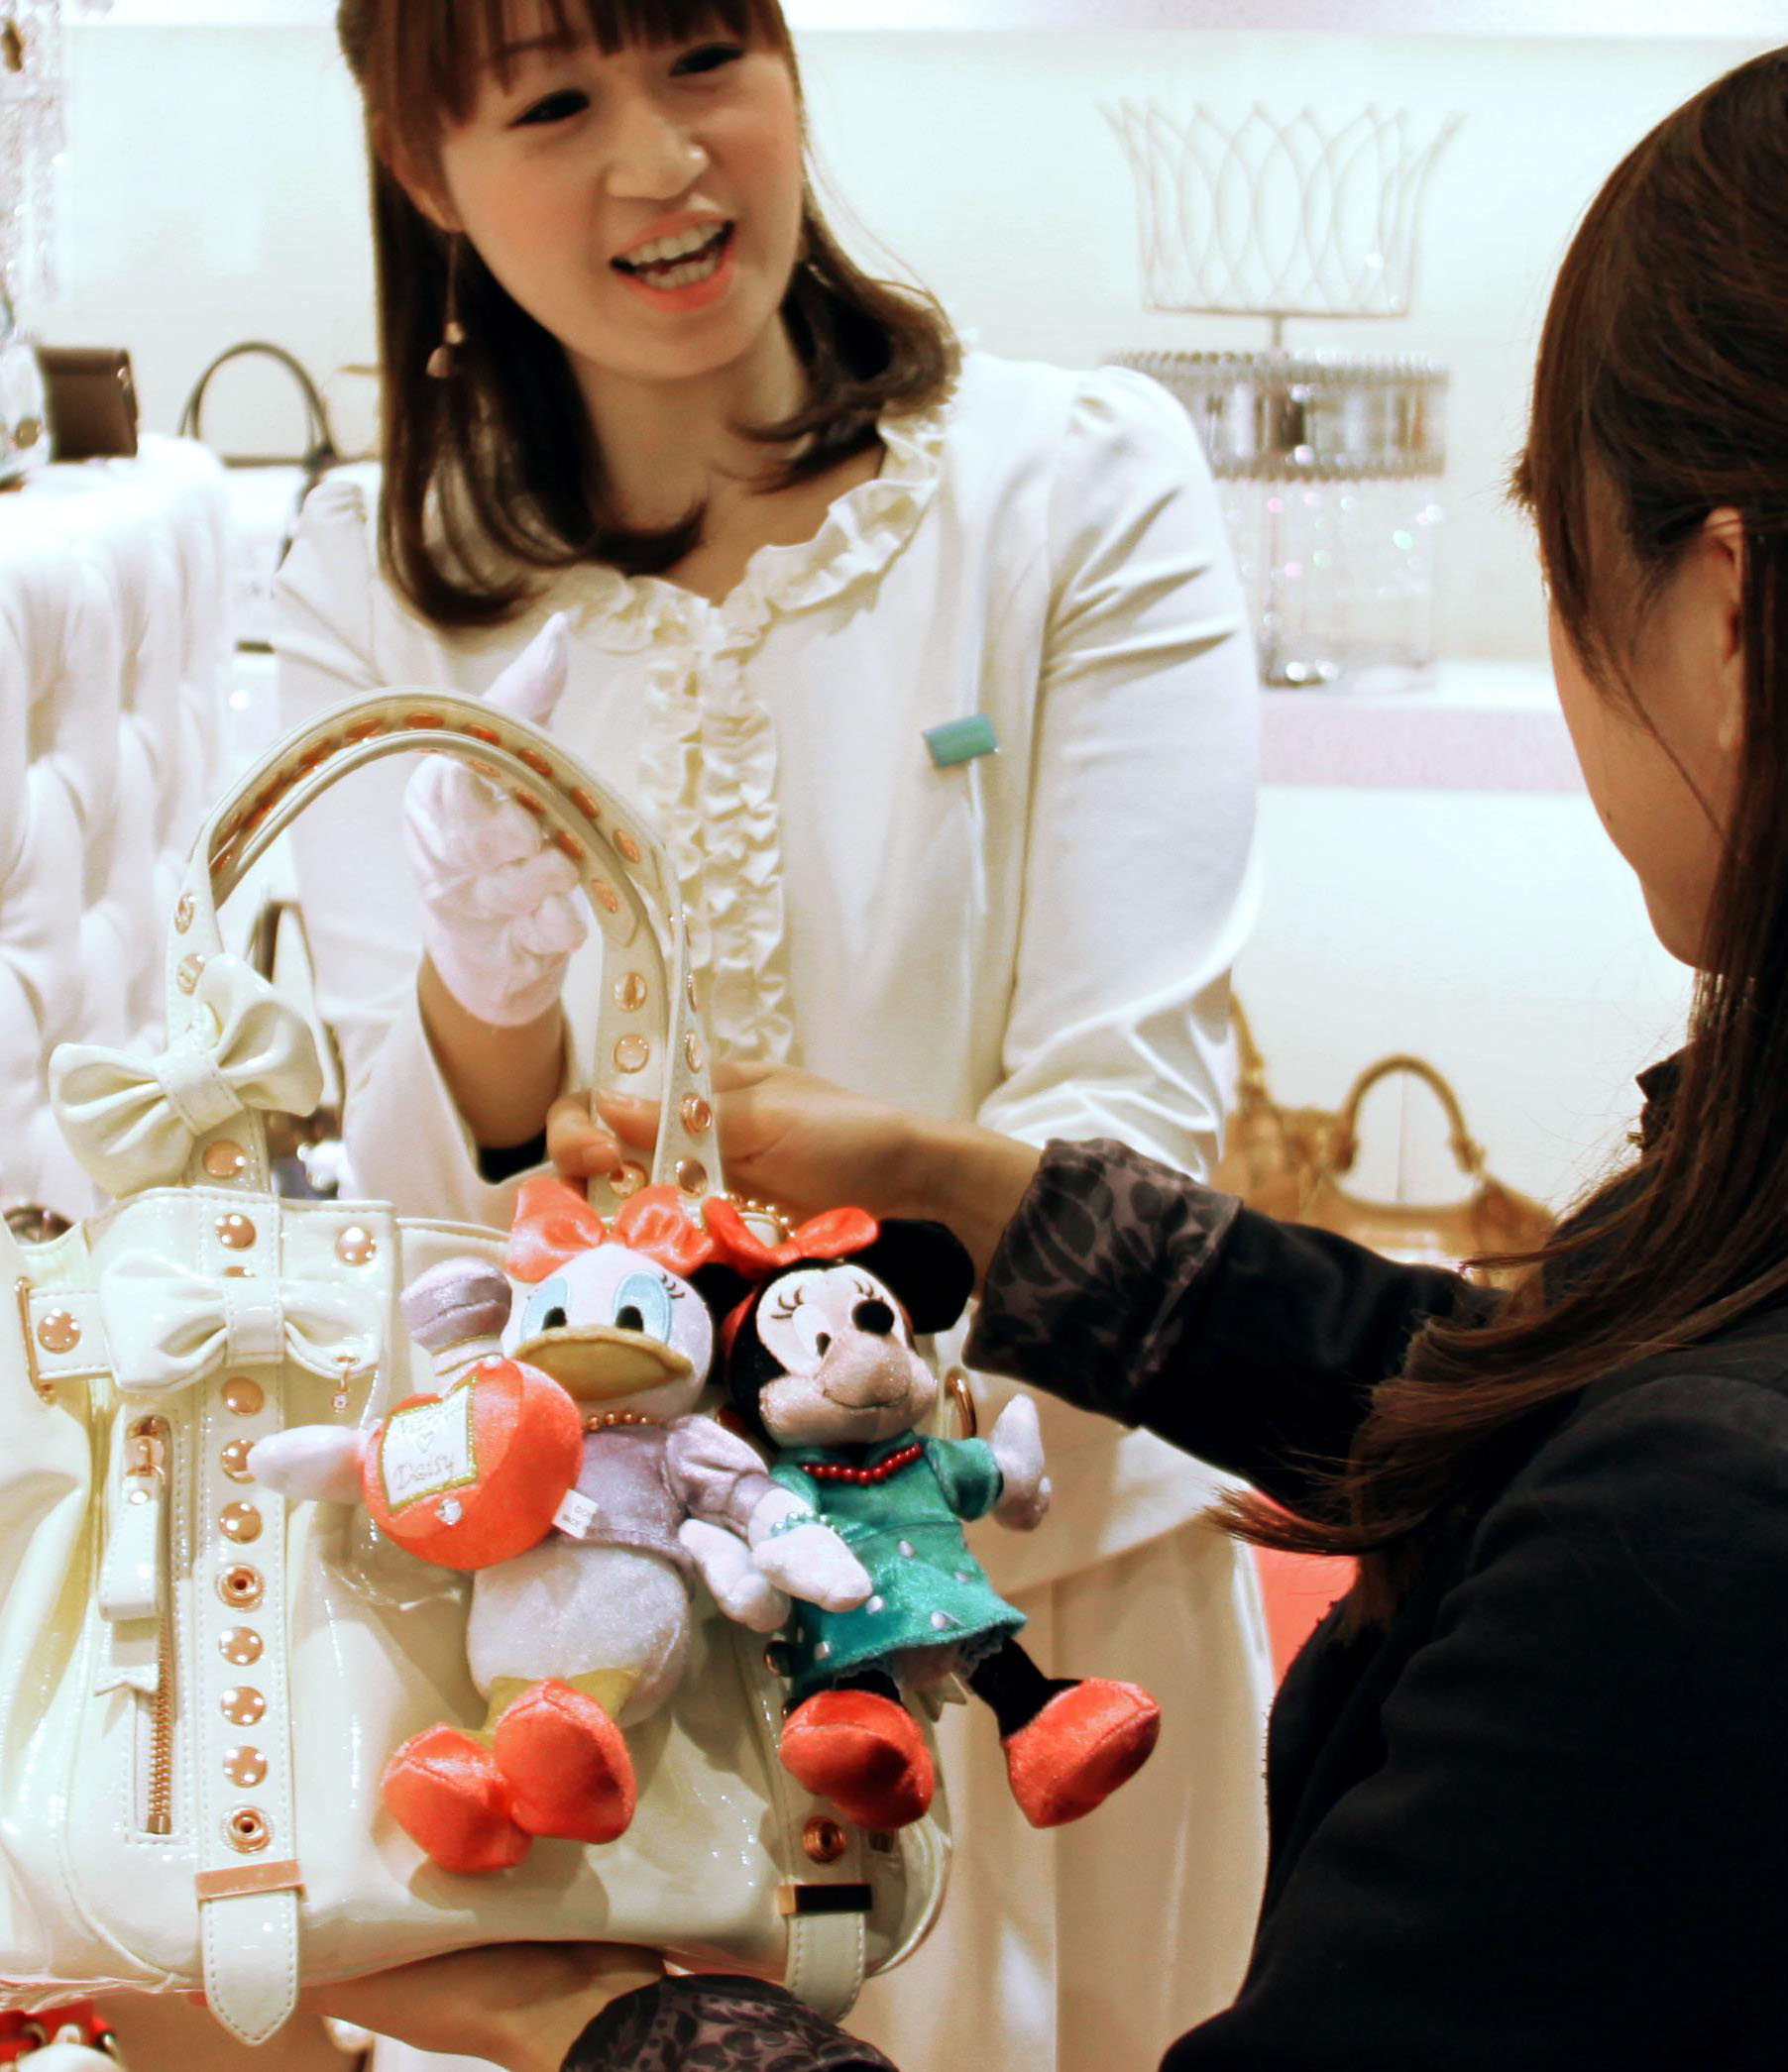 Not too Goofy: A customer checks out a bag for adults adorned with Disney characters at a Samantha Thavasa shop in Tokyo's Omotesando district earlier this month. | KYODO